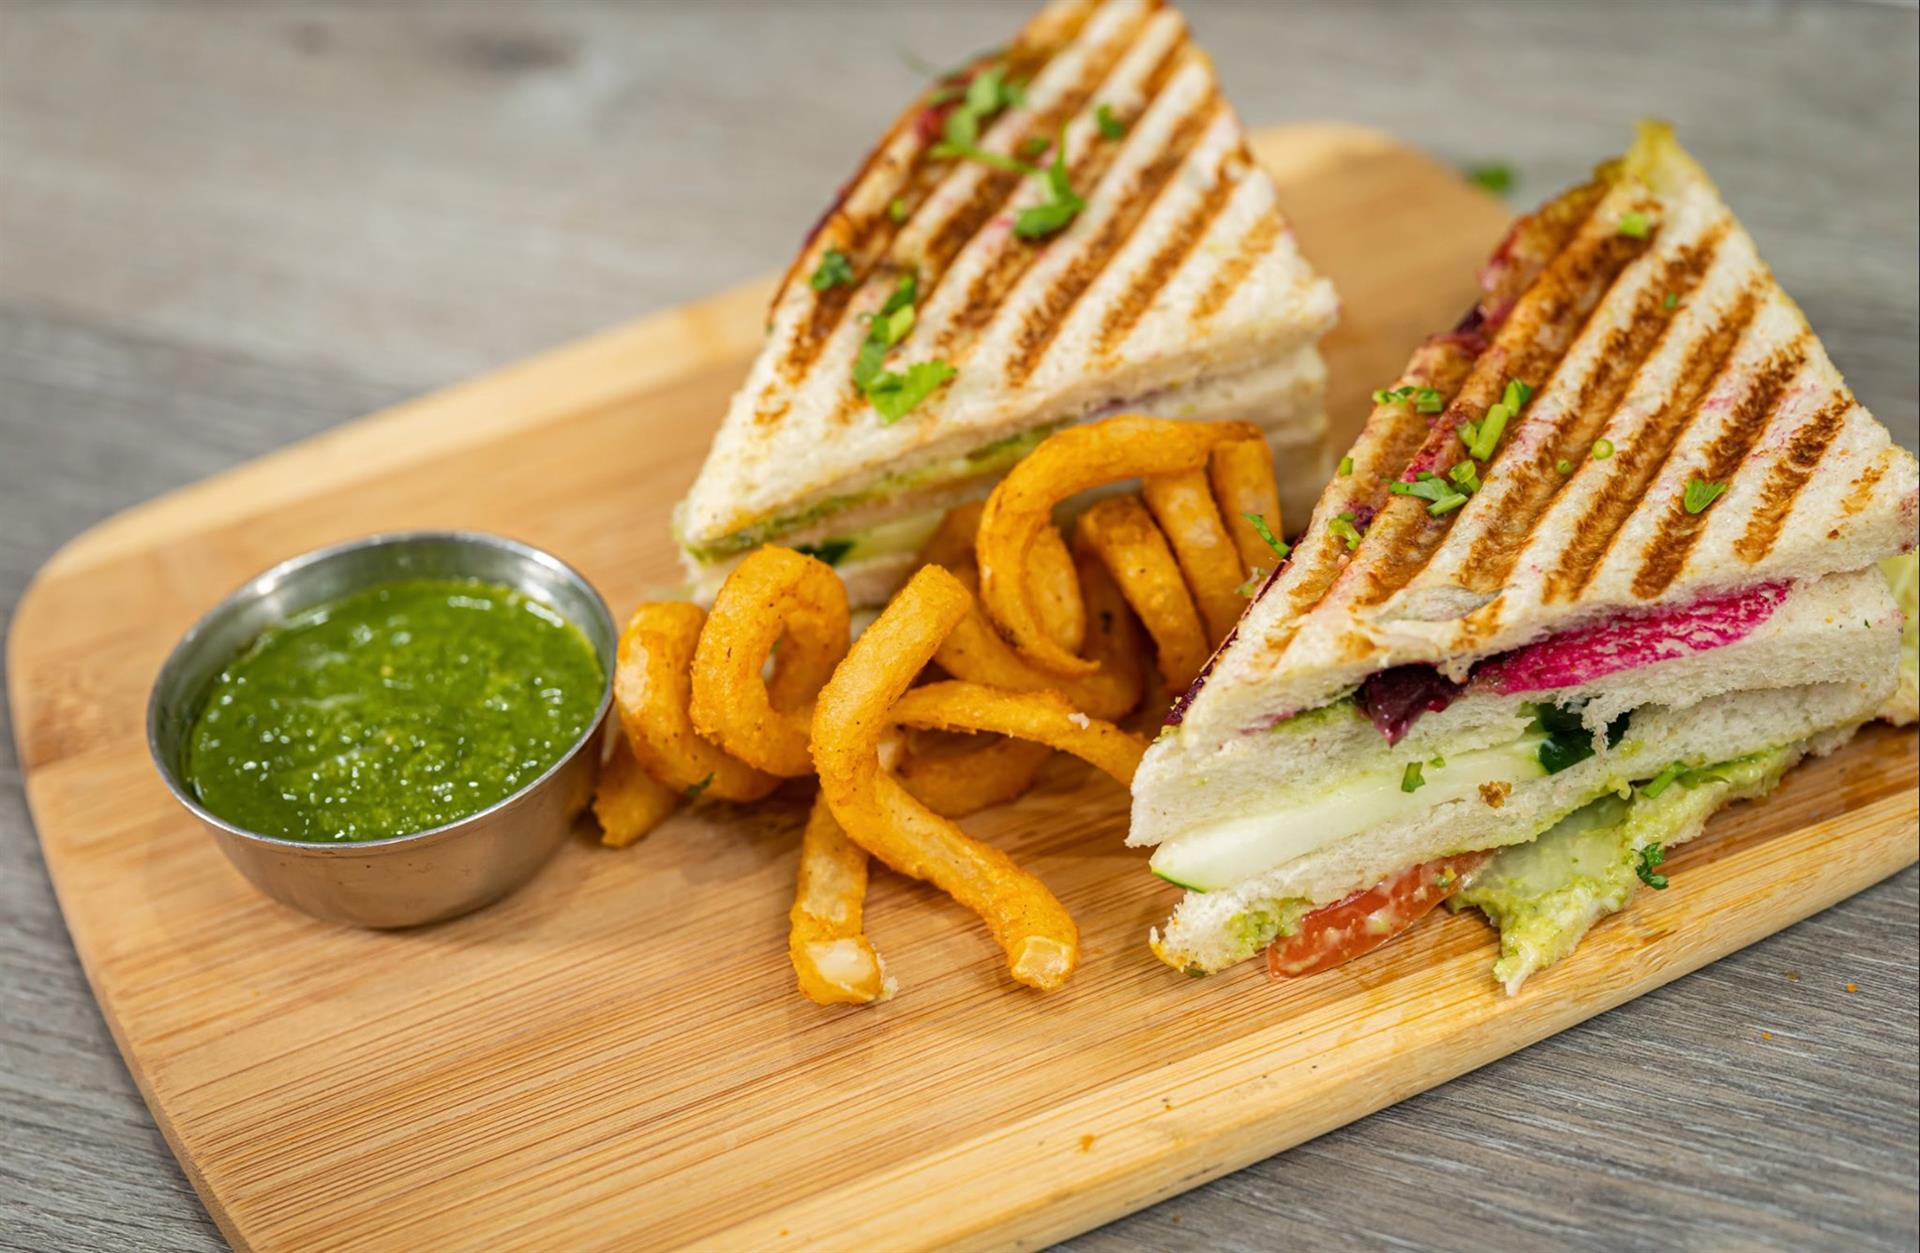 club sandwich with fries and dipping sauce